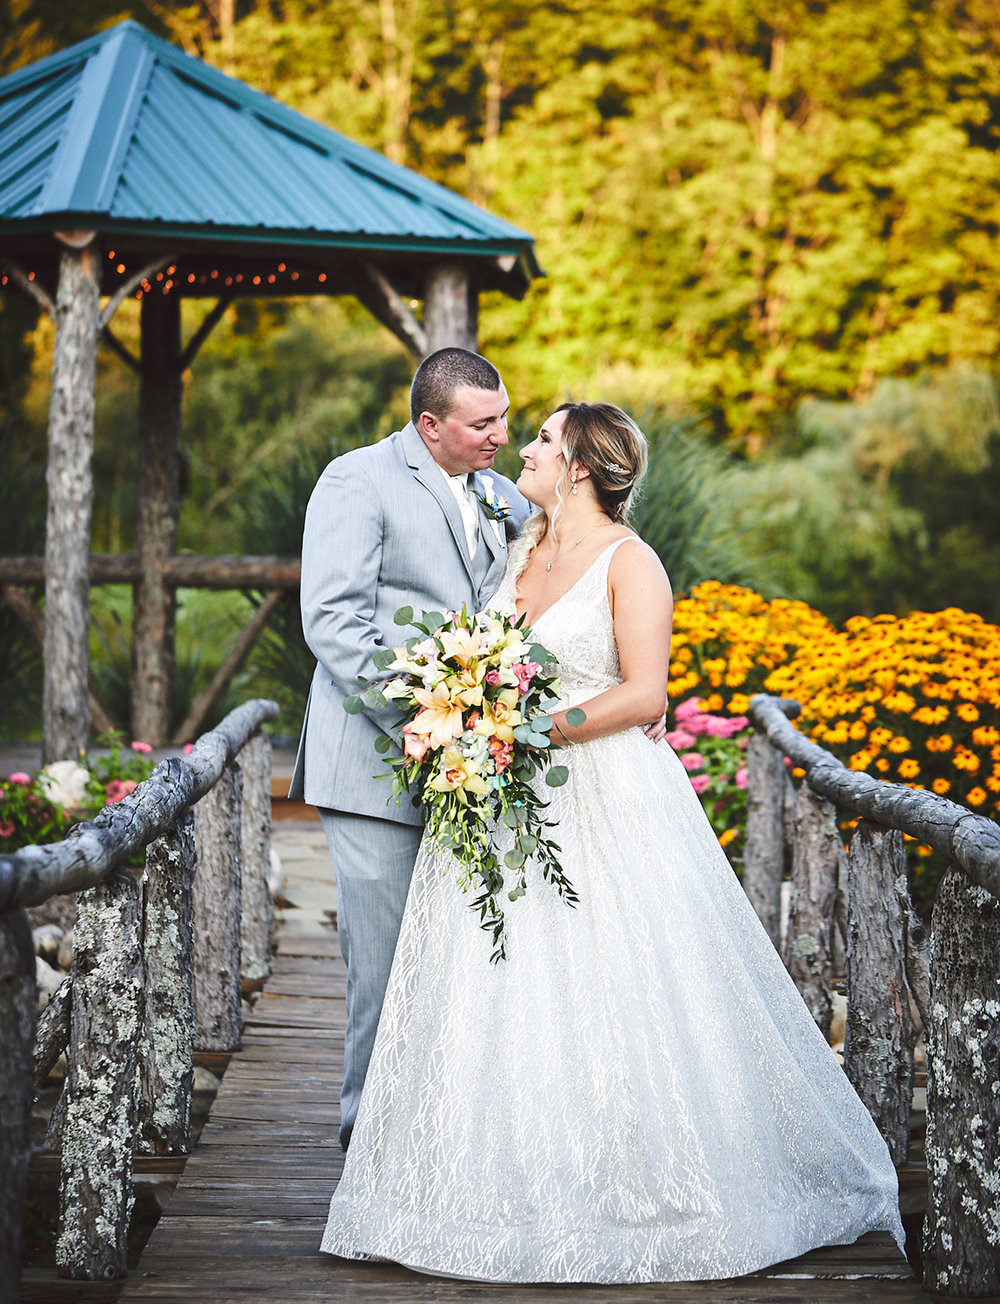 180811_RosebudEstatesWeddingPhotography_WesternNYWeddingPhotographer_By_BriJohnsonWeddings_0172.jpg